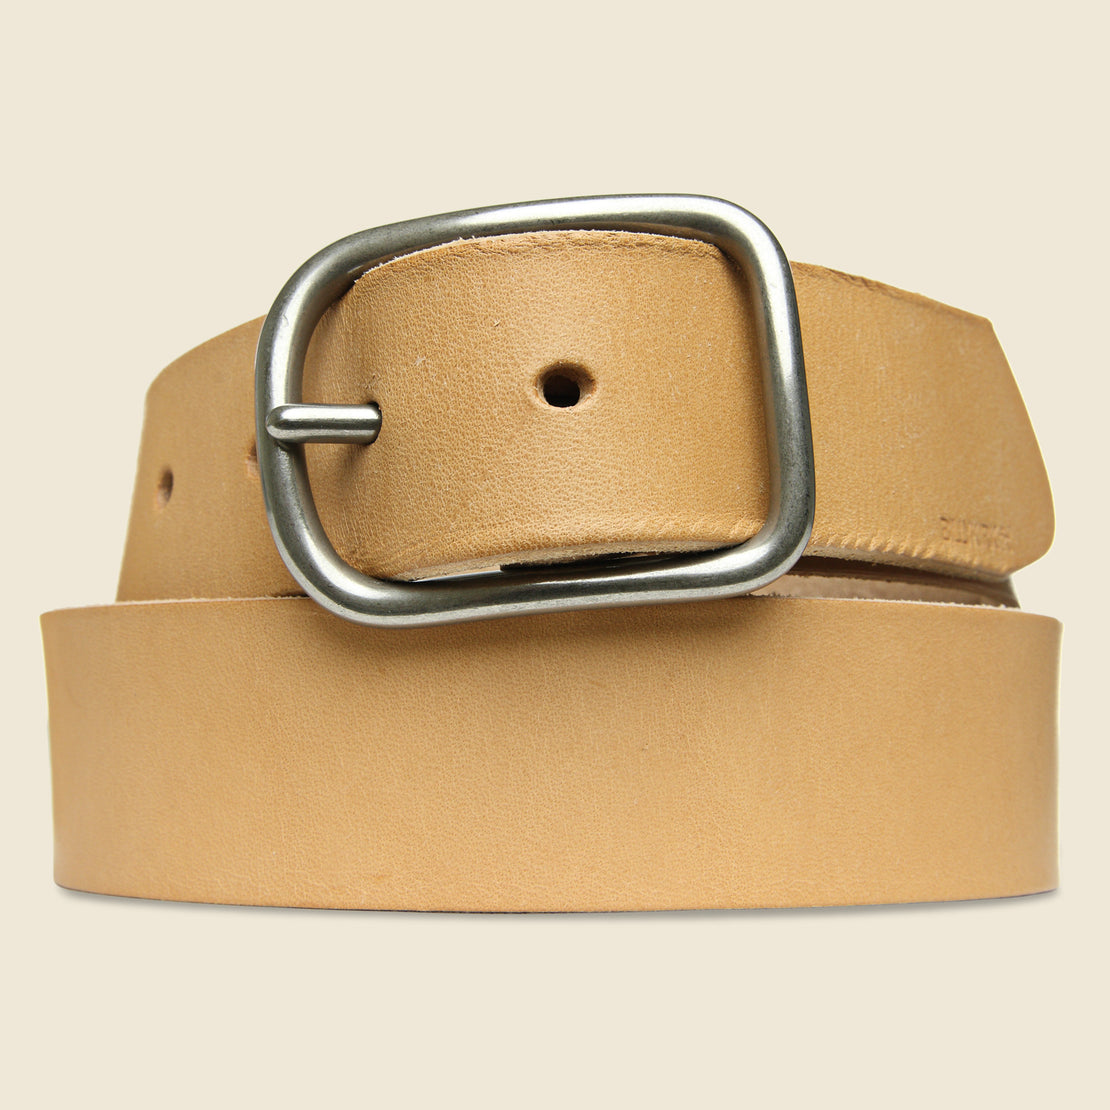 BILLYKIRK Center Bar Belt - Natural